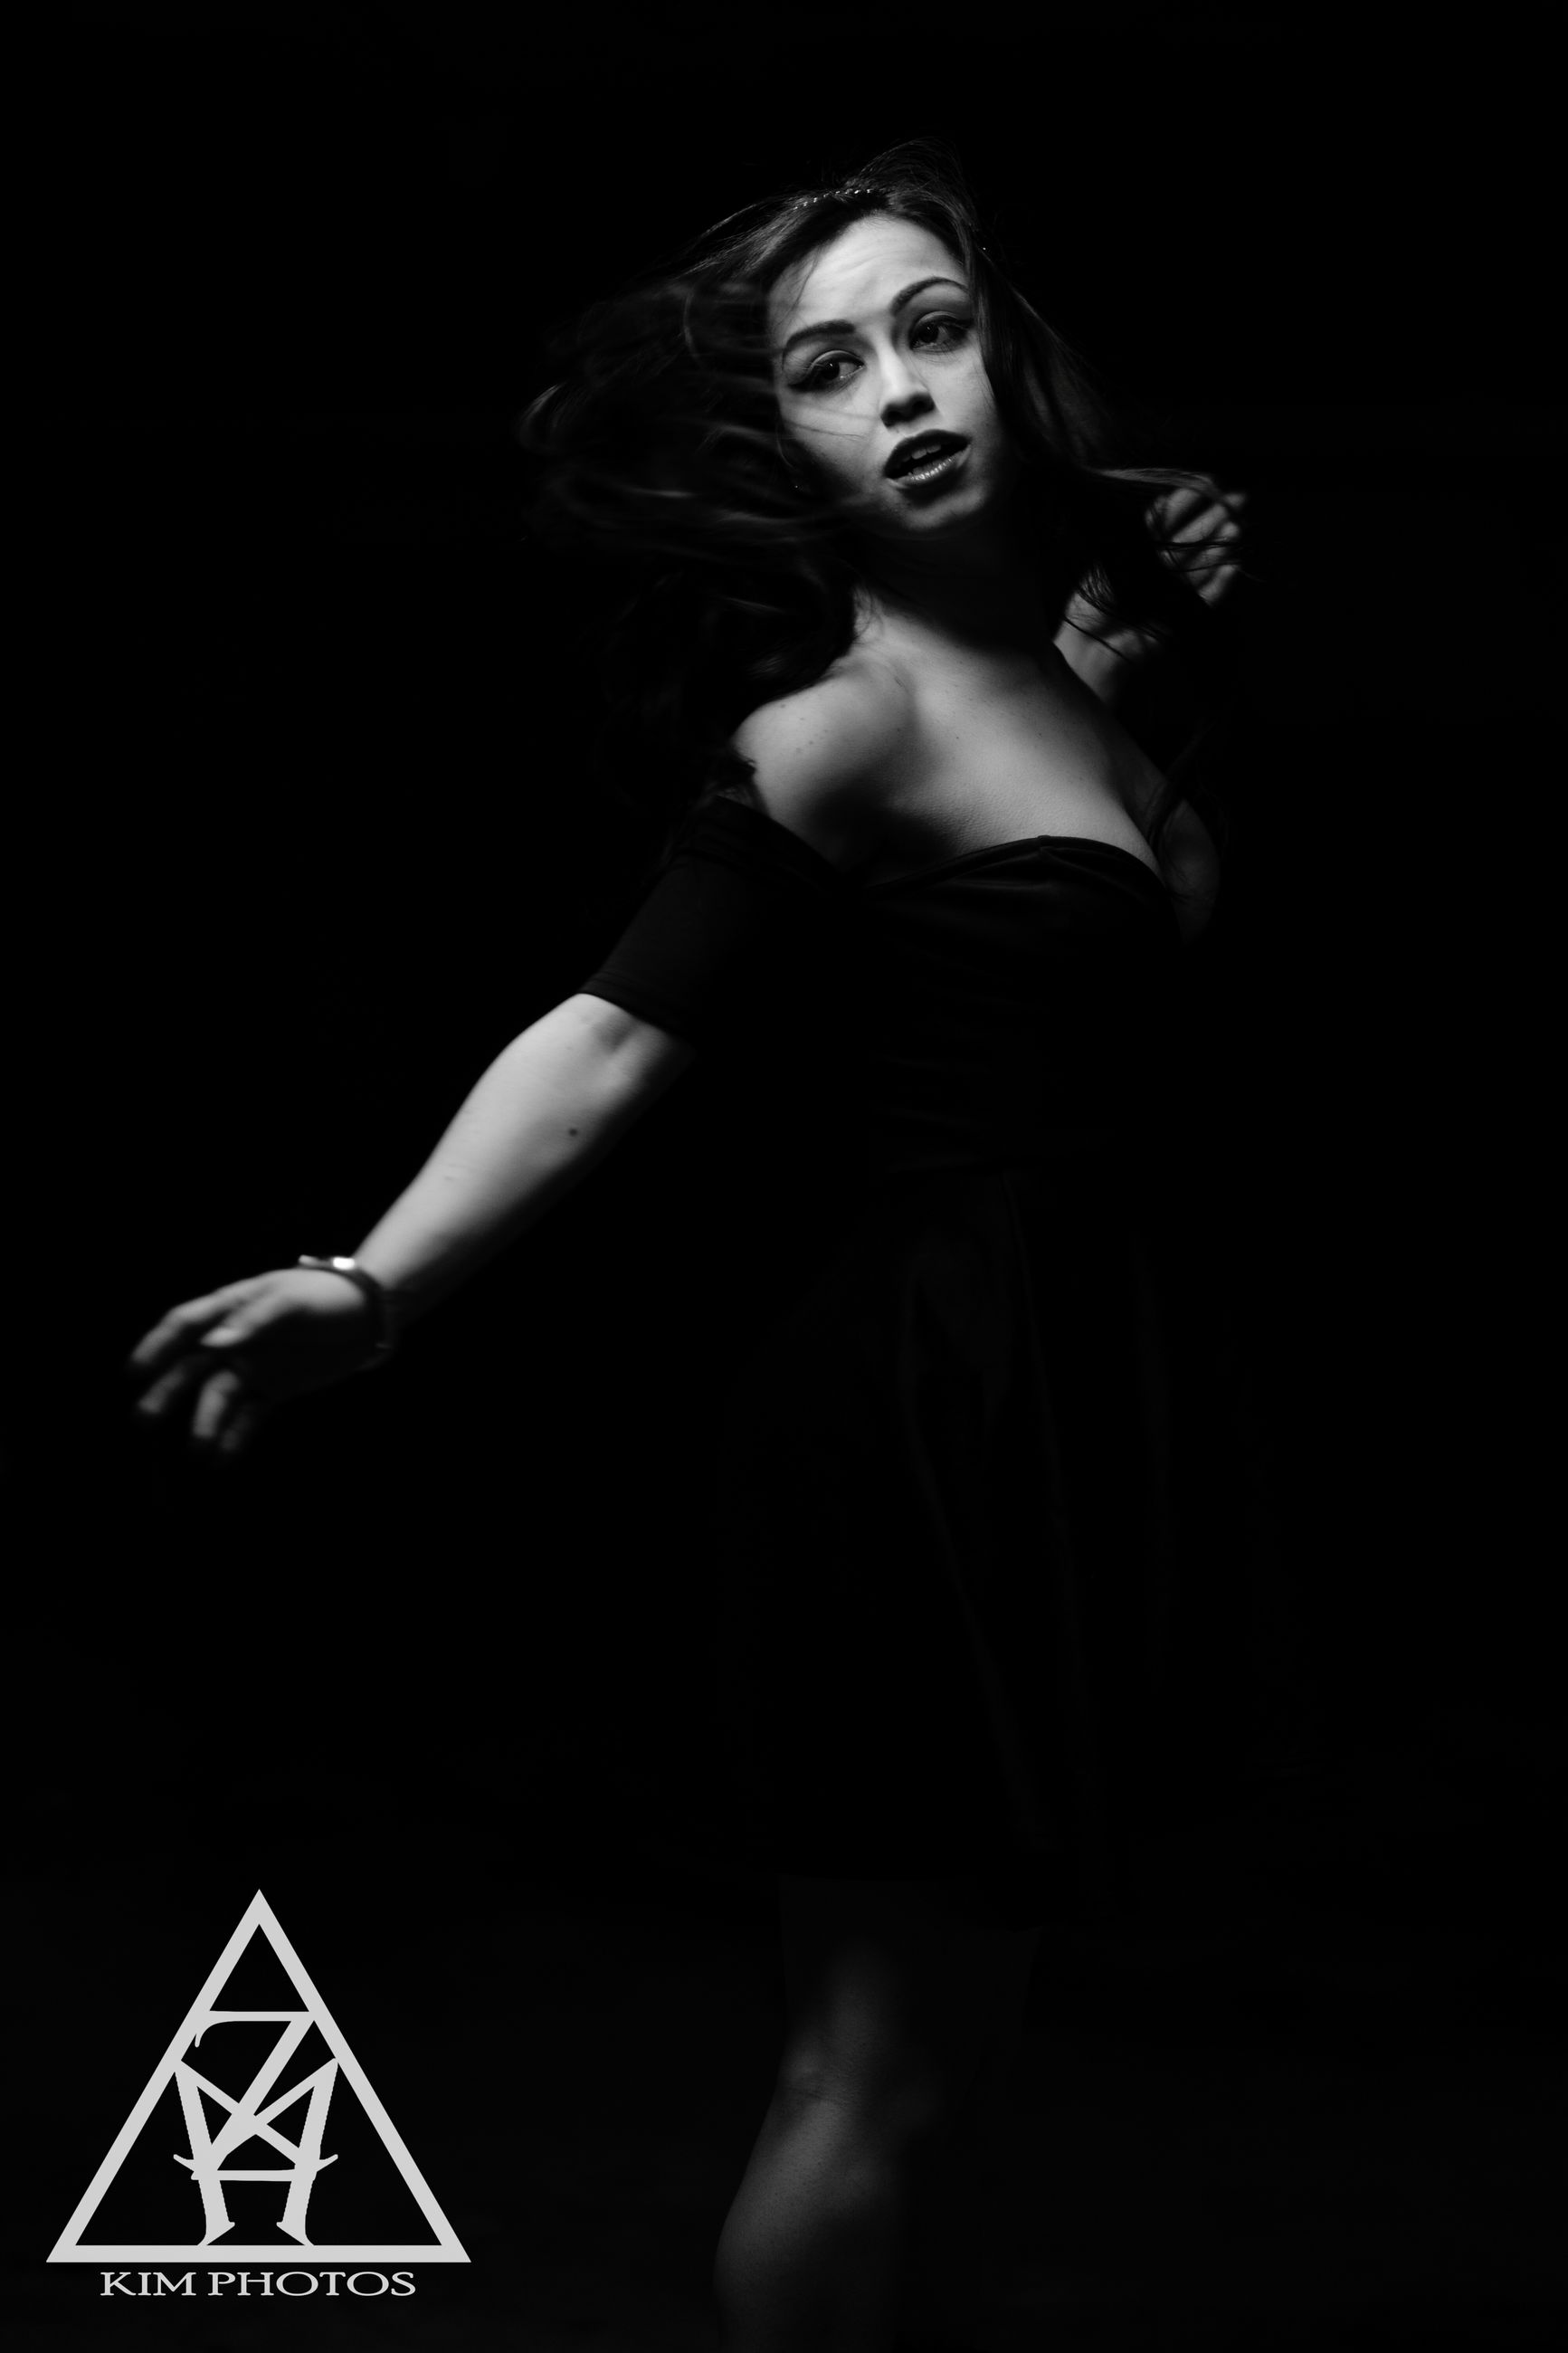 human representation, indoors, statue, art, young adult, sculpture, creativity, art and craft, front view, religion, night, spirituality, studio shot, low angle view, wall - building feature, black background